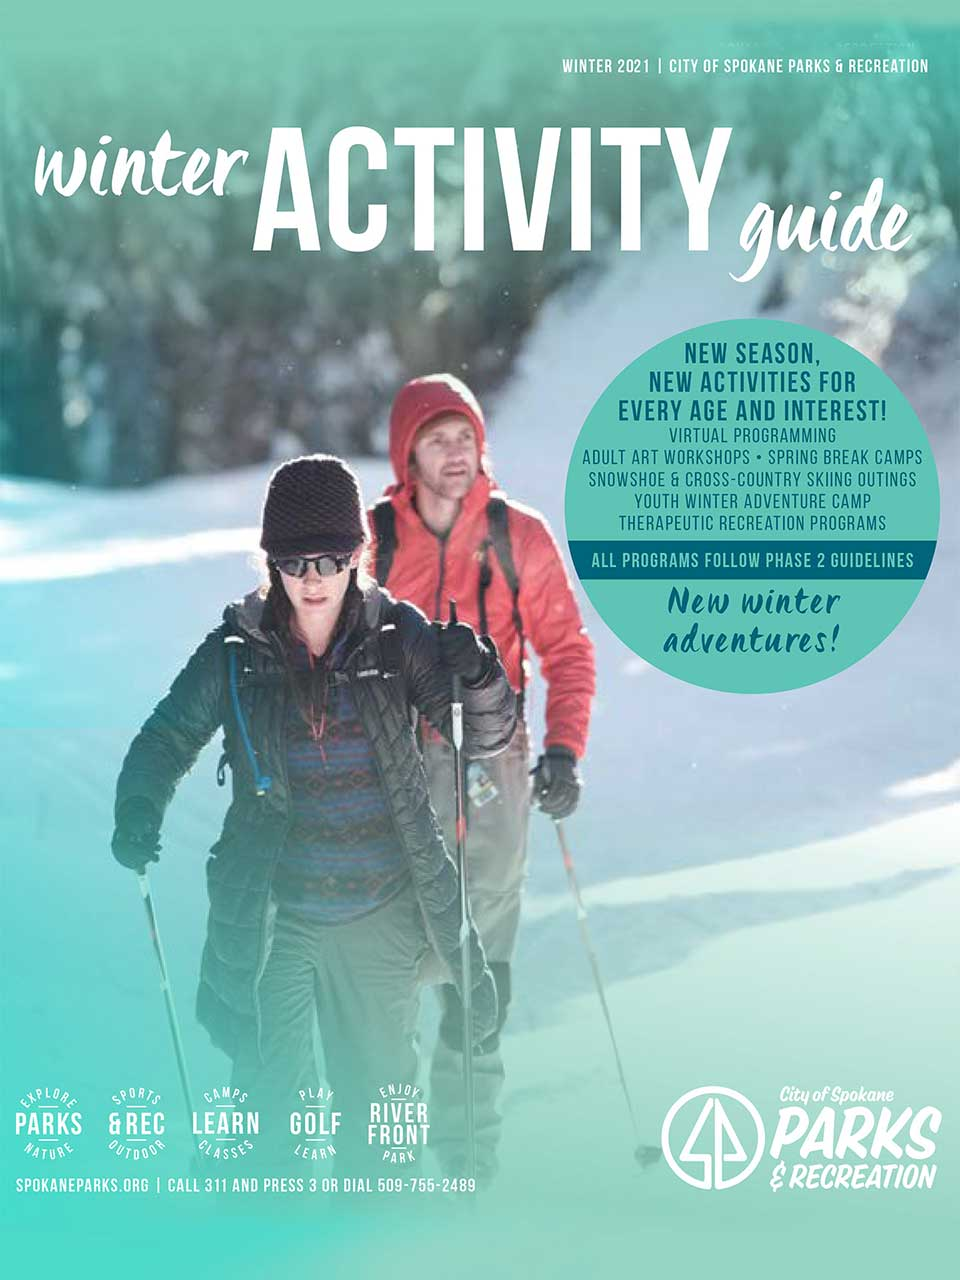 2021 Winter Activity Guide